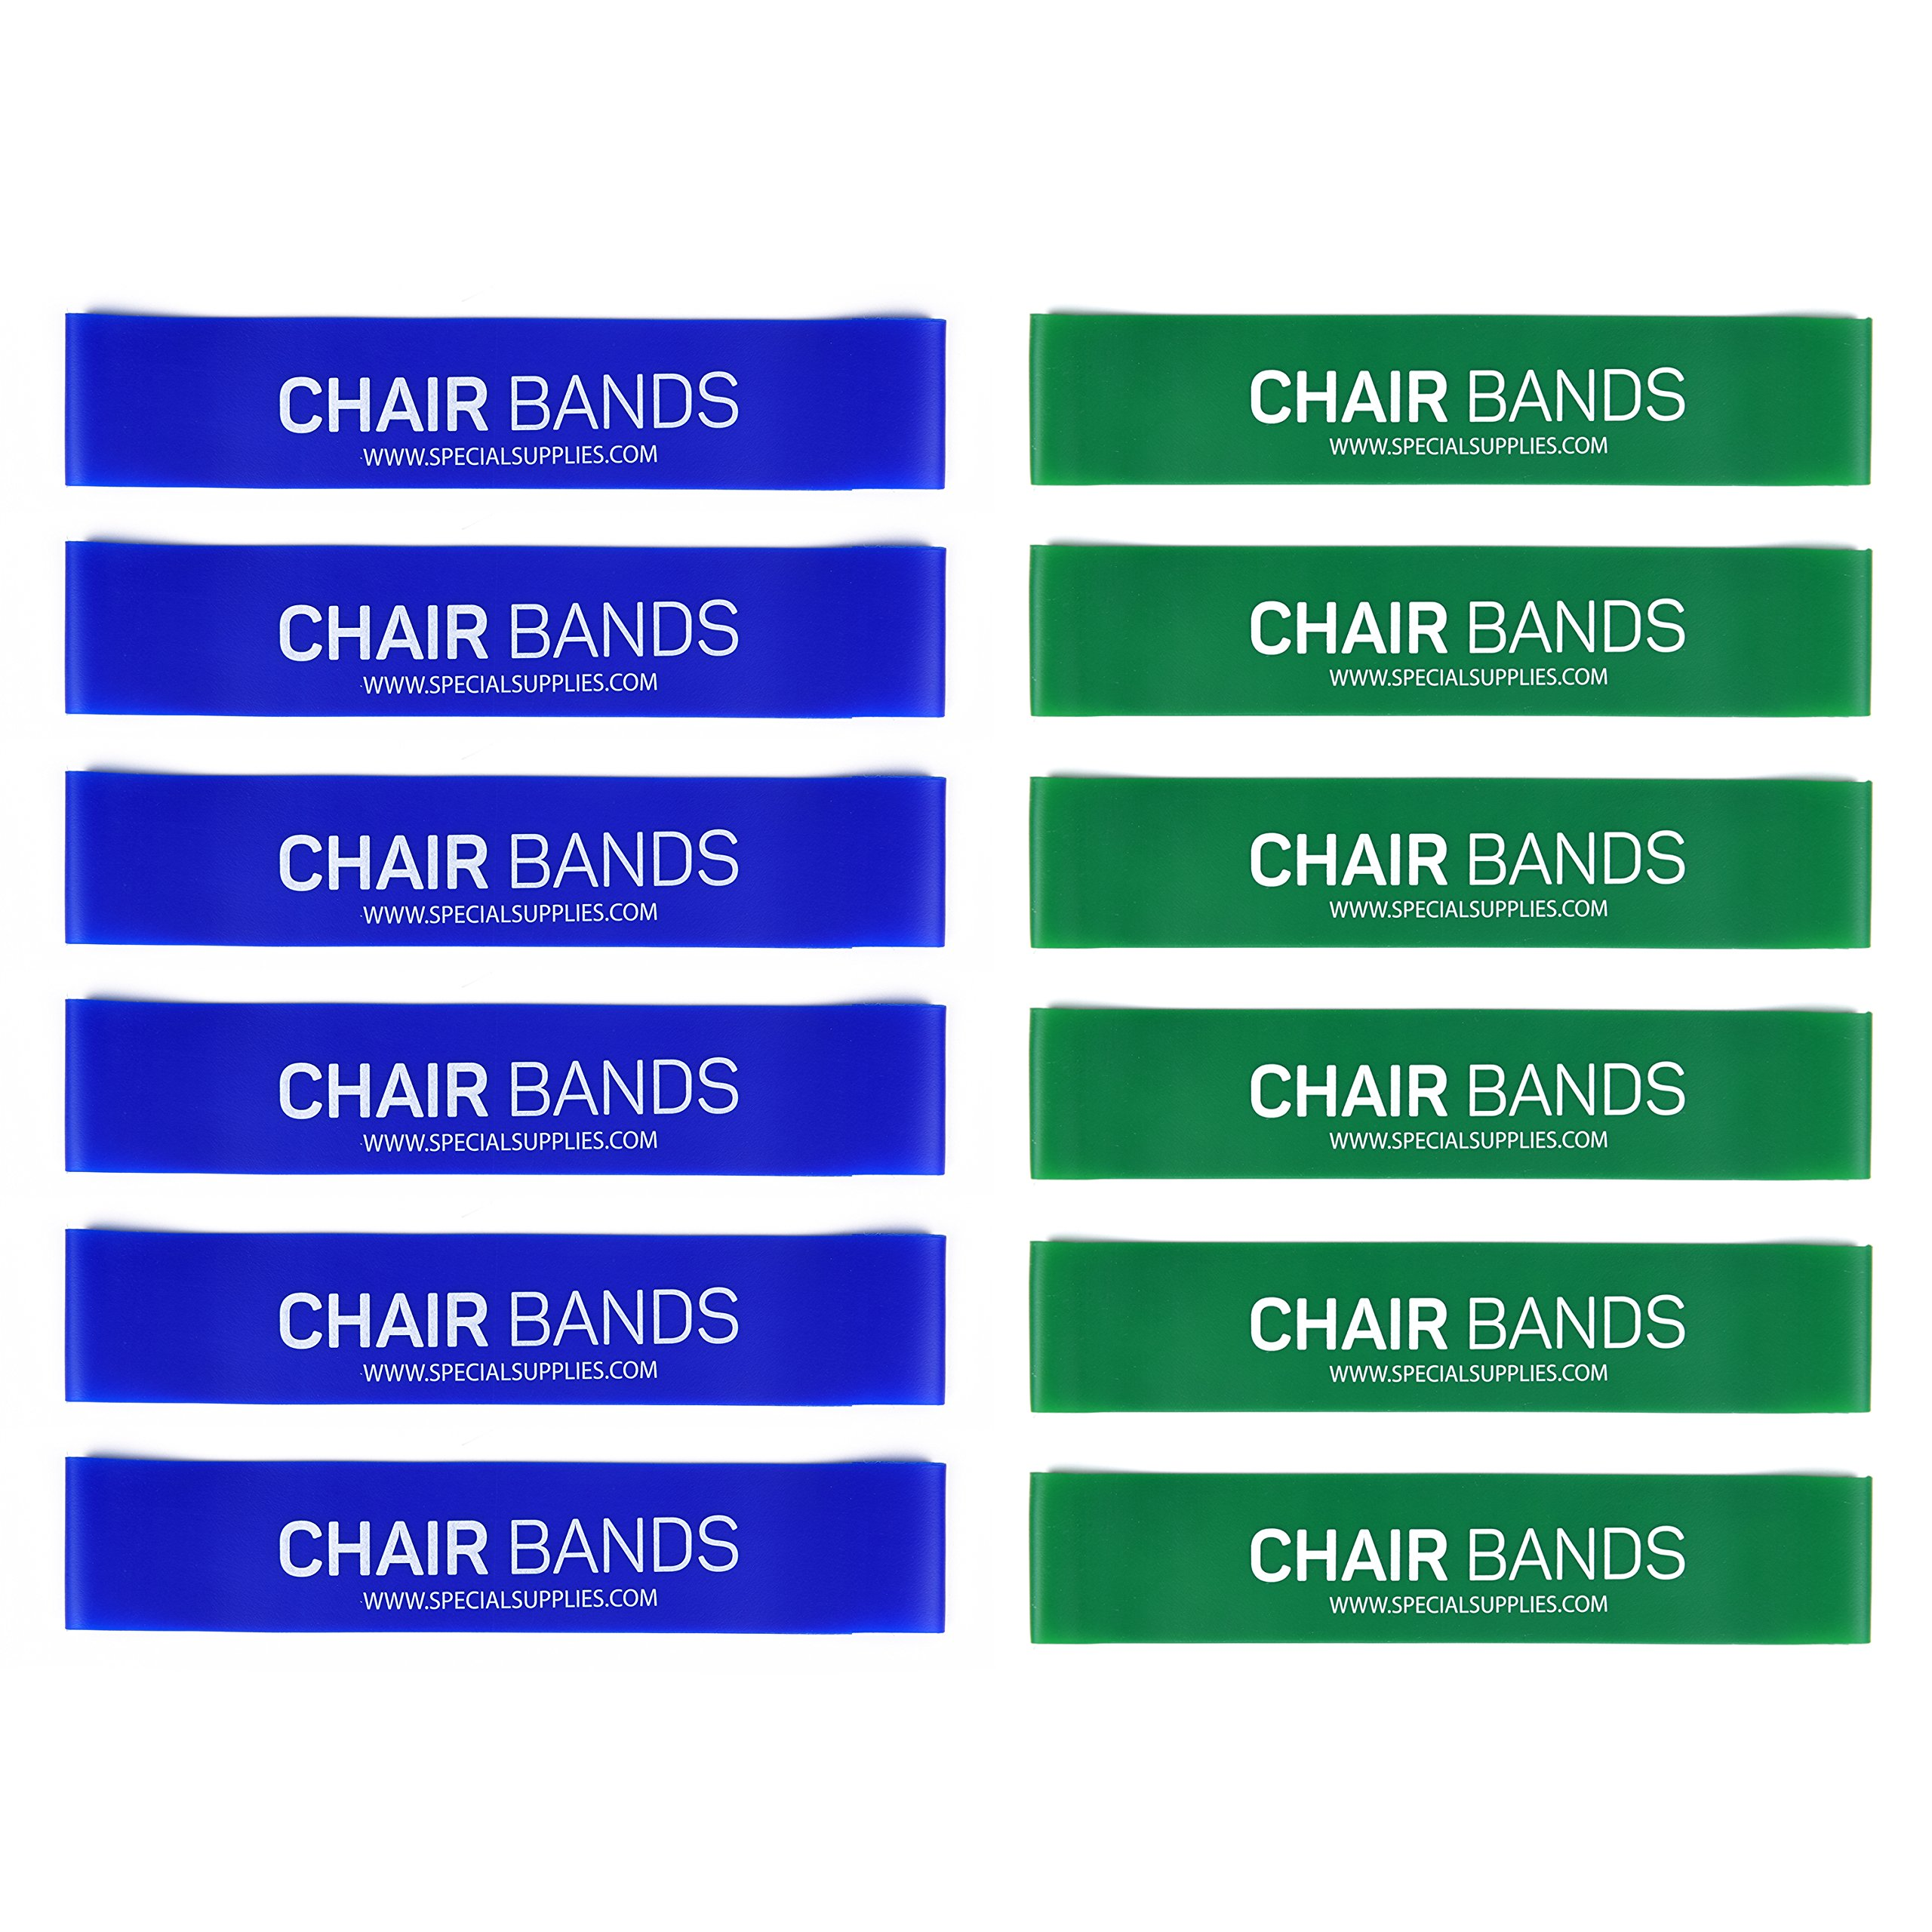 Special Supplies Kid's Rubber Bouncy Chair Bands (12-Pack) Promotes Calming Focus, Fidget & Stress Relief | Supports Sensory Needs for ADHD, ADD, SPD, Autism | Fits Classroom Desks